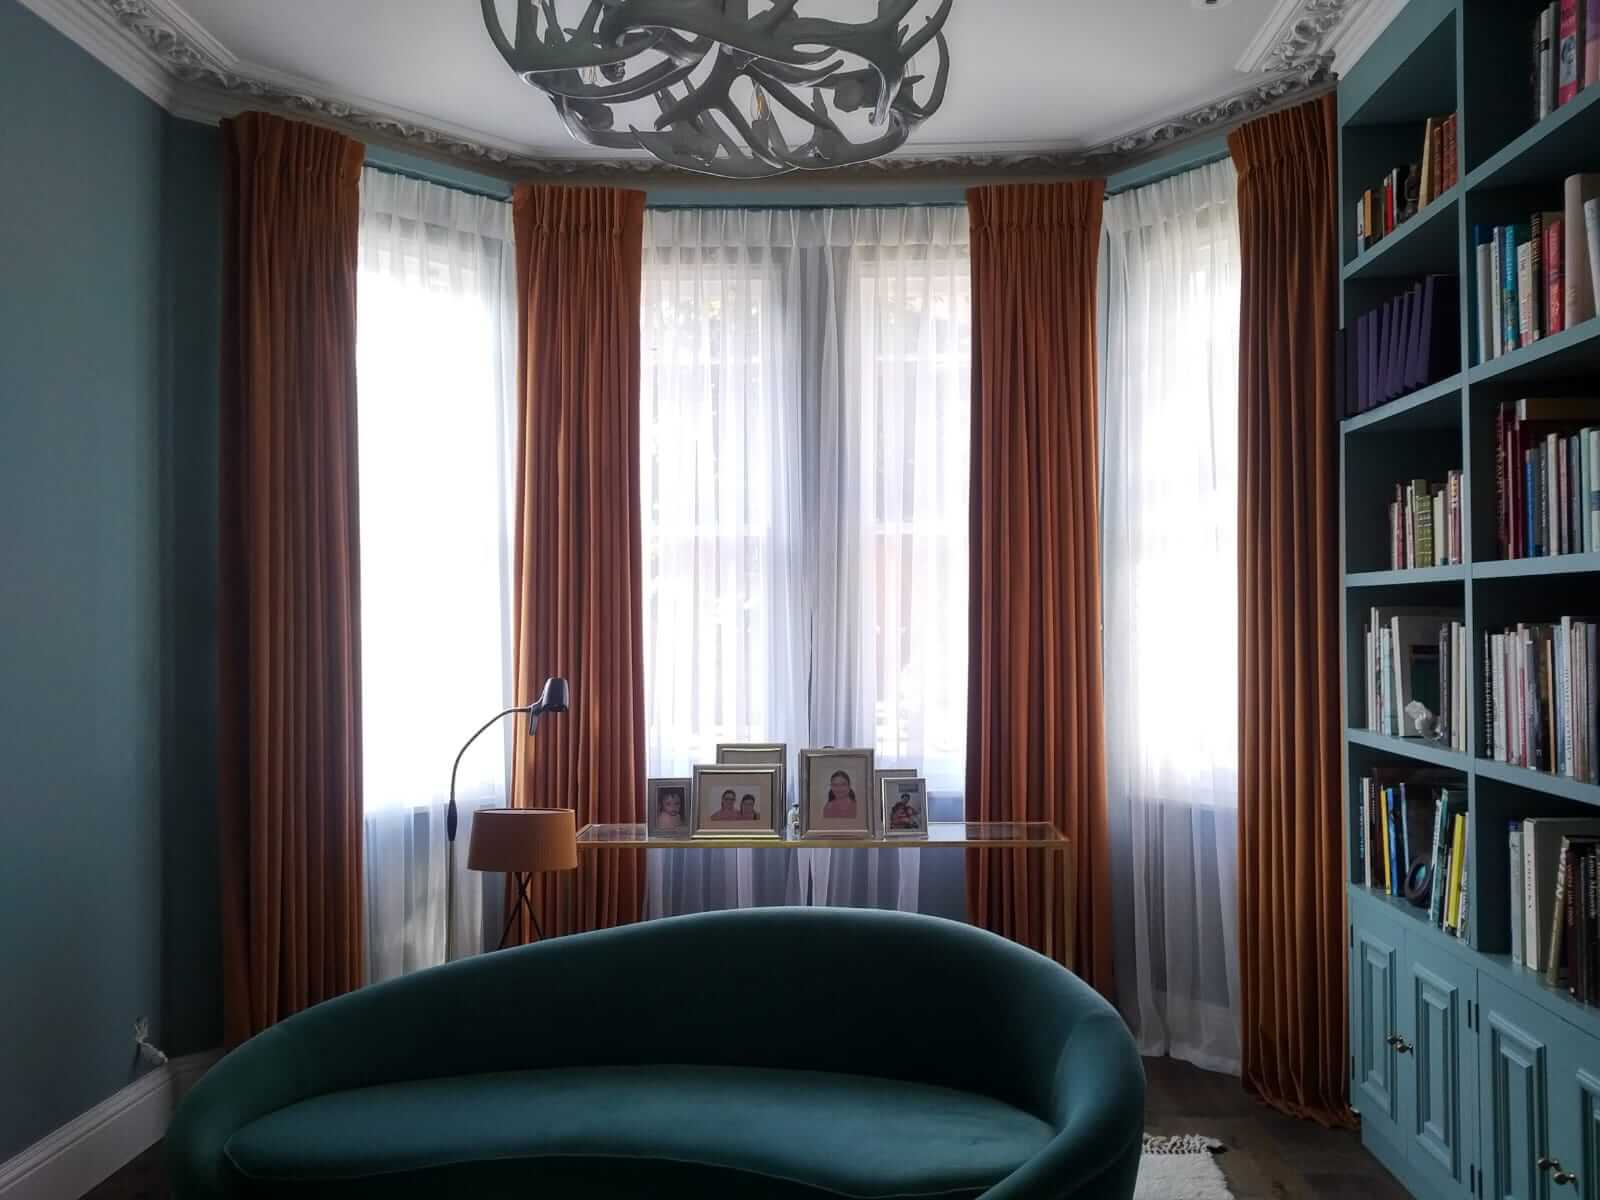 5 Reasons Why Floor To Ceiling Curtains Will Improve Any